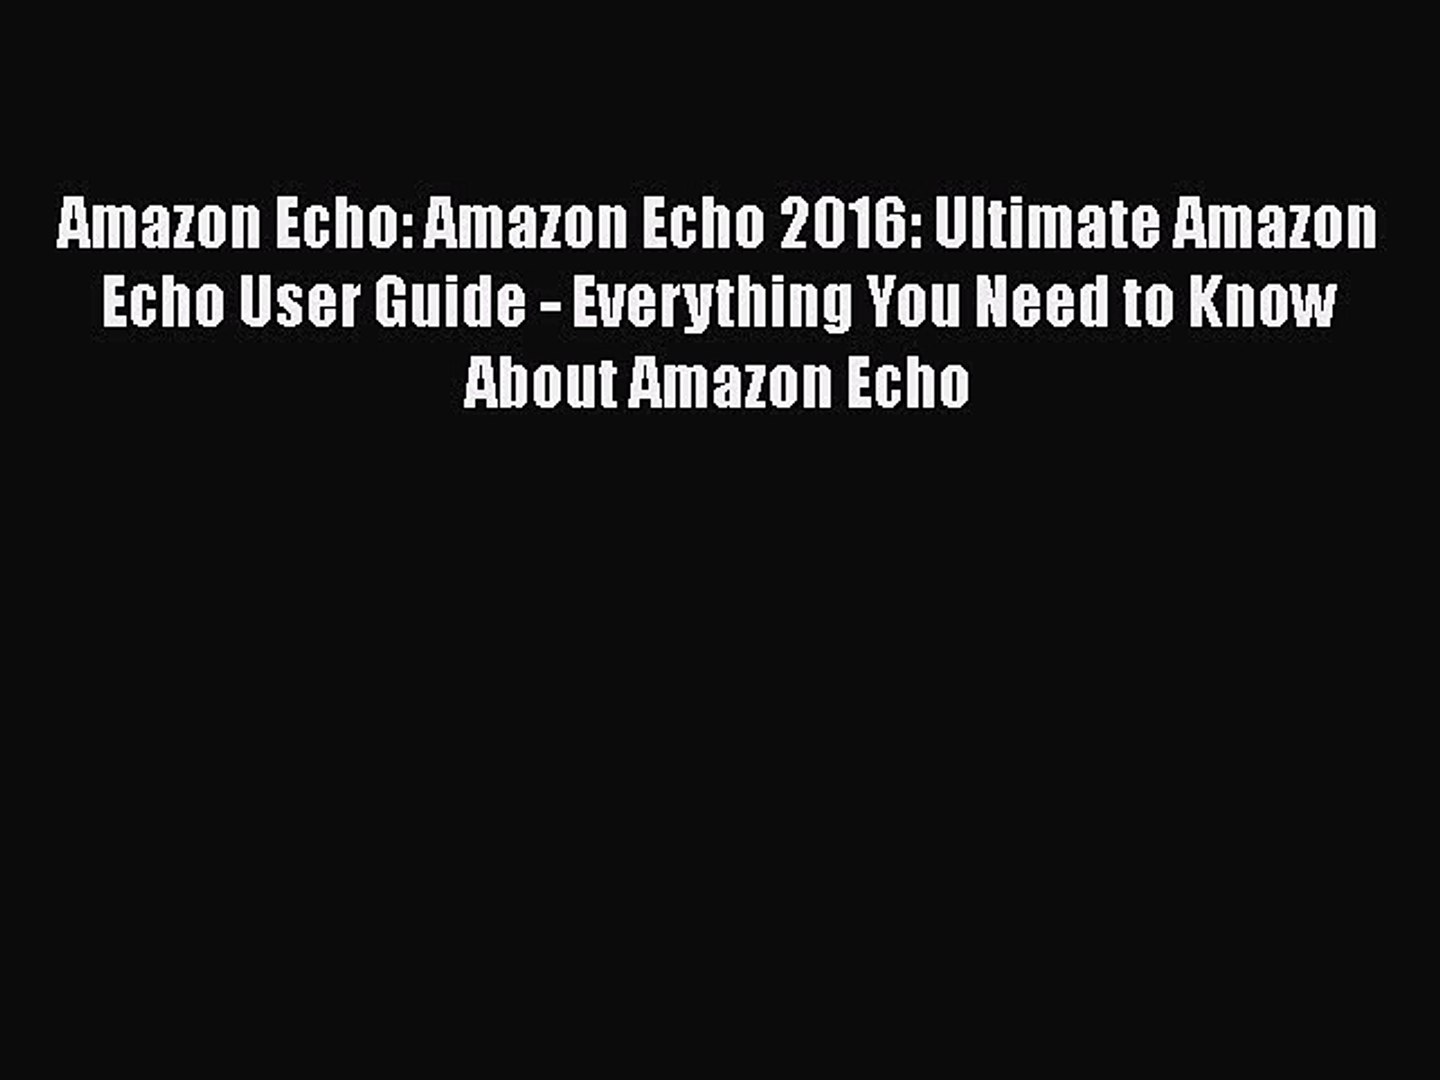 [Read Book] Amazon Echo: Amazon Echo 2016: Ultimate Amazon Echo User Guide - Everything You